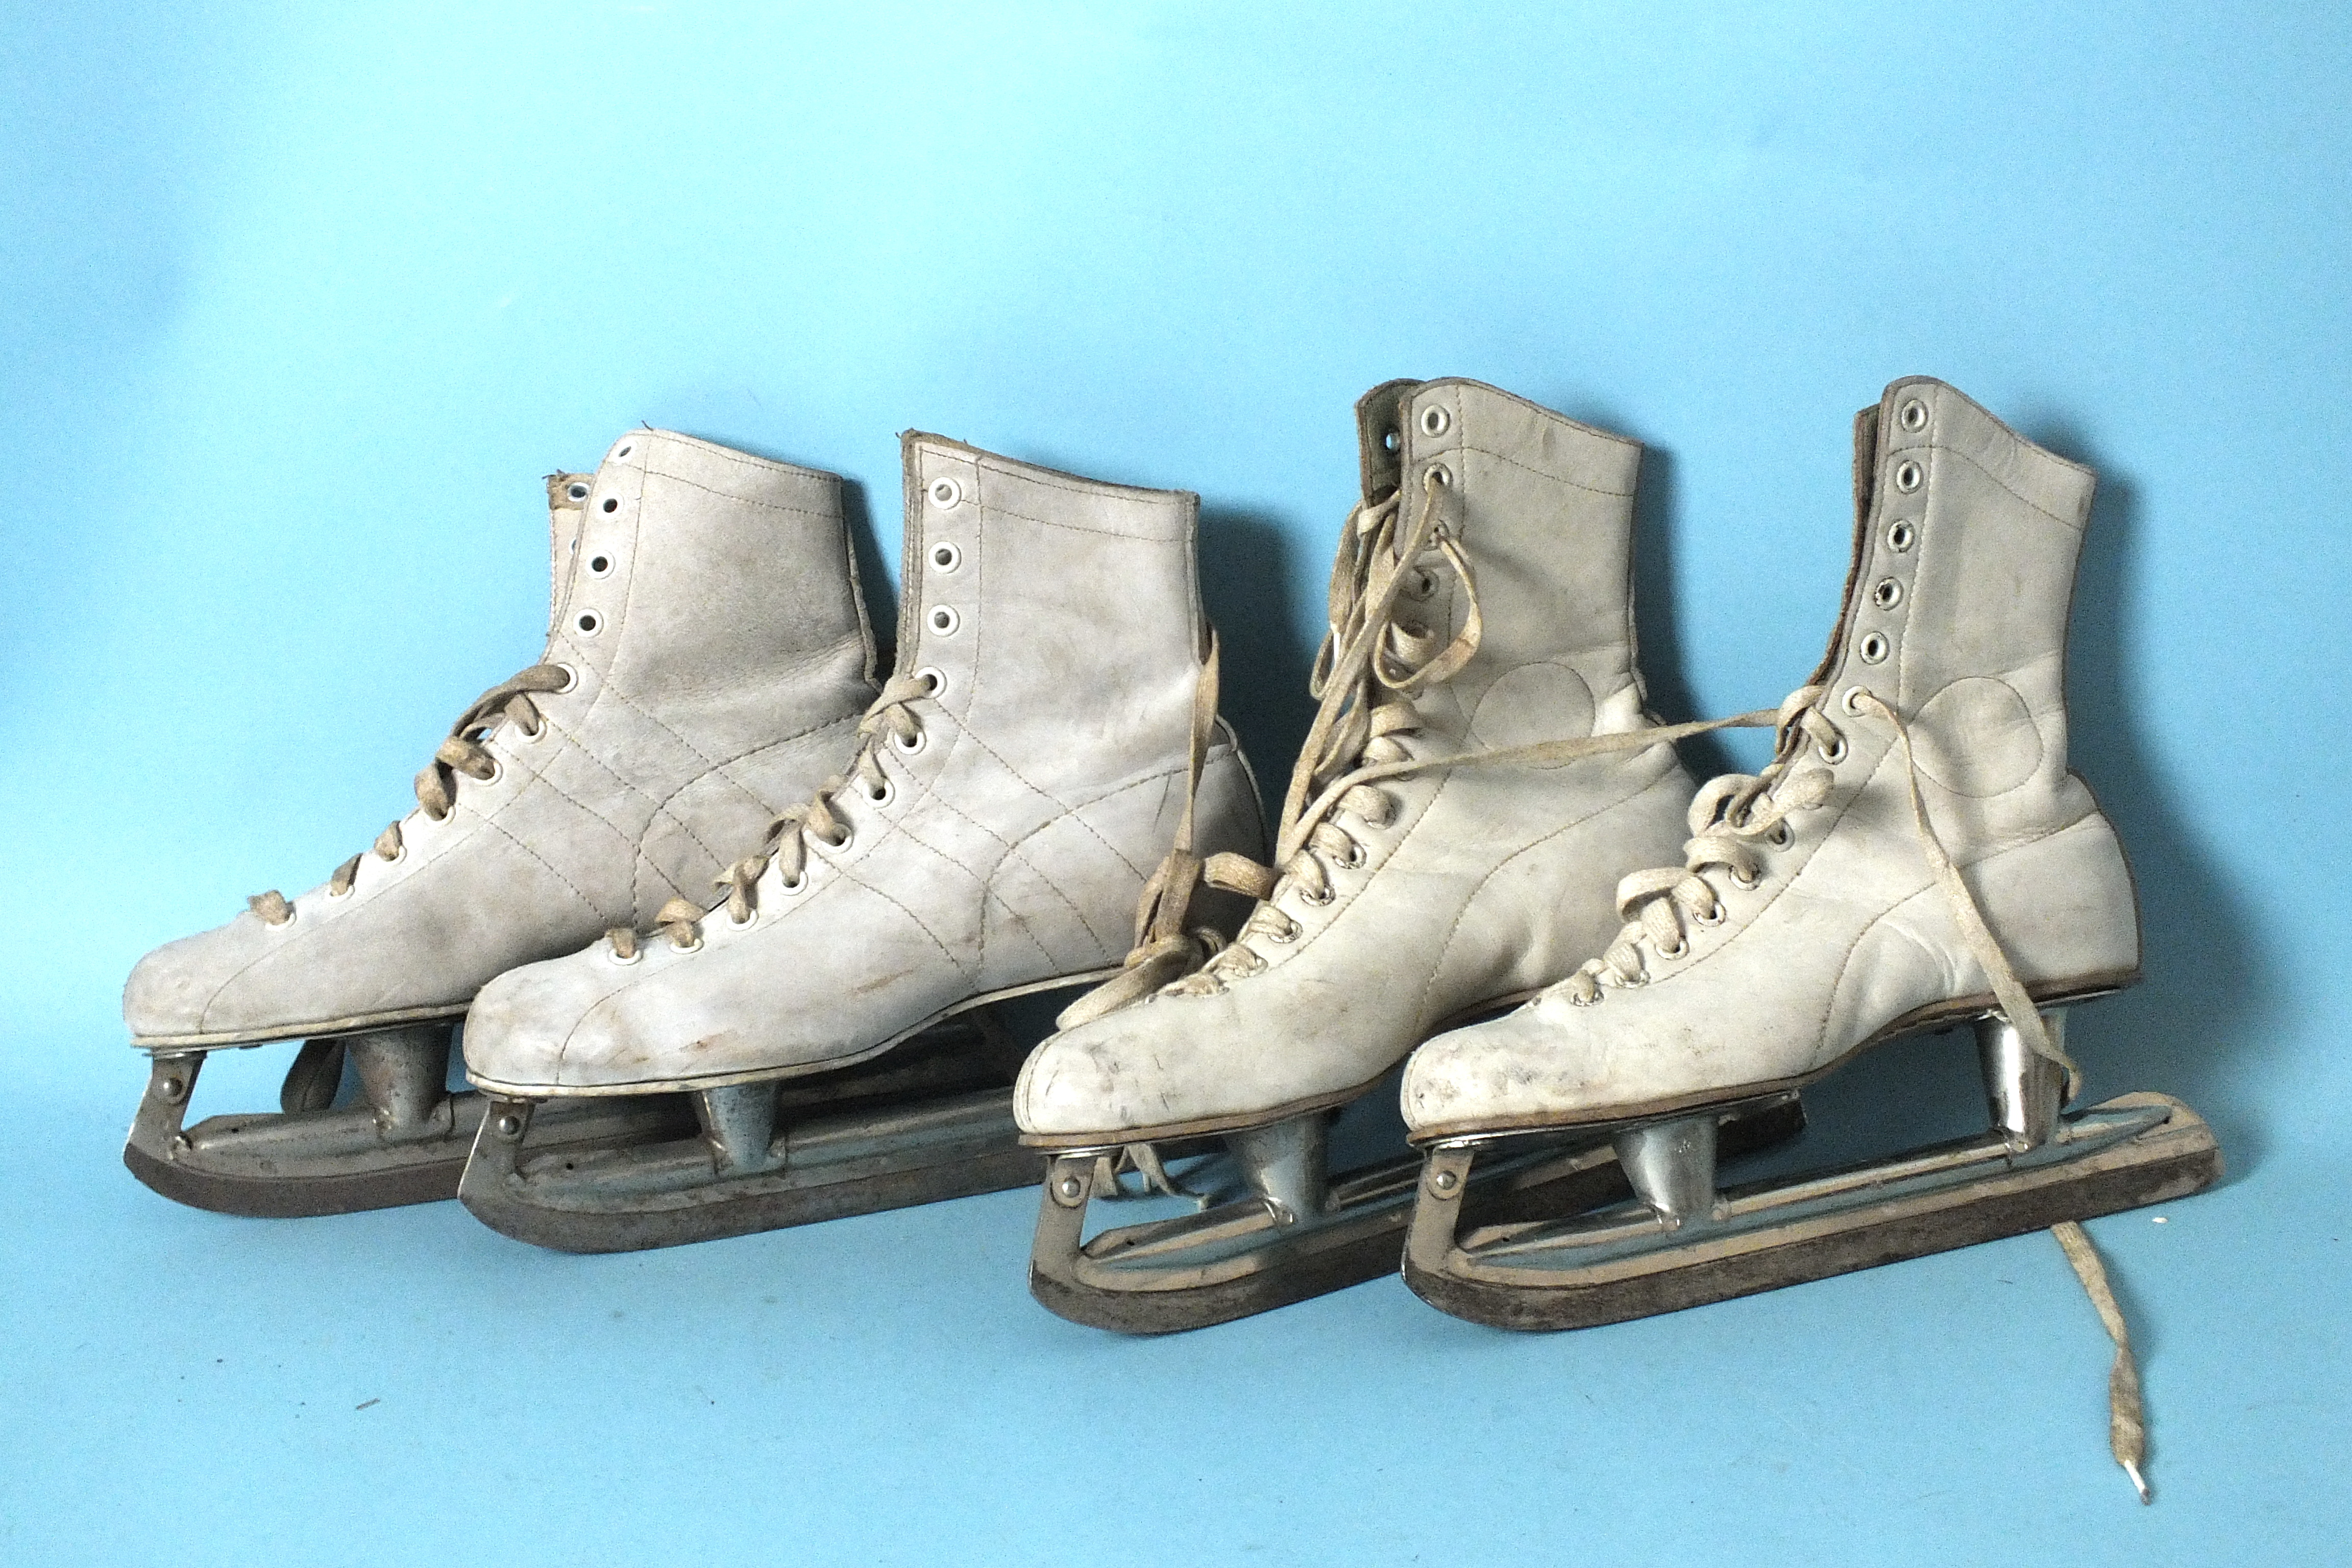 Lot 561 - Two pairs of lady's white leather ice skates.